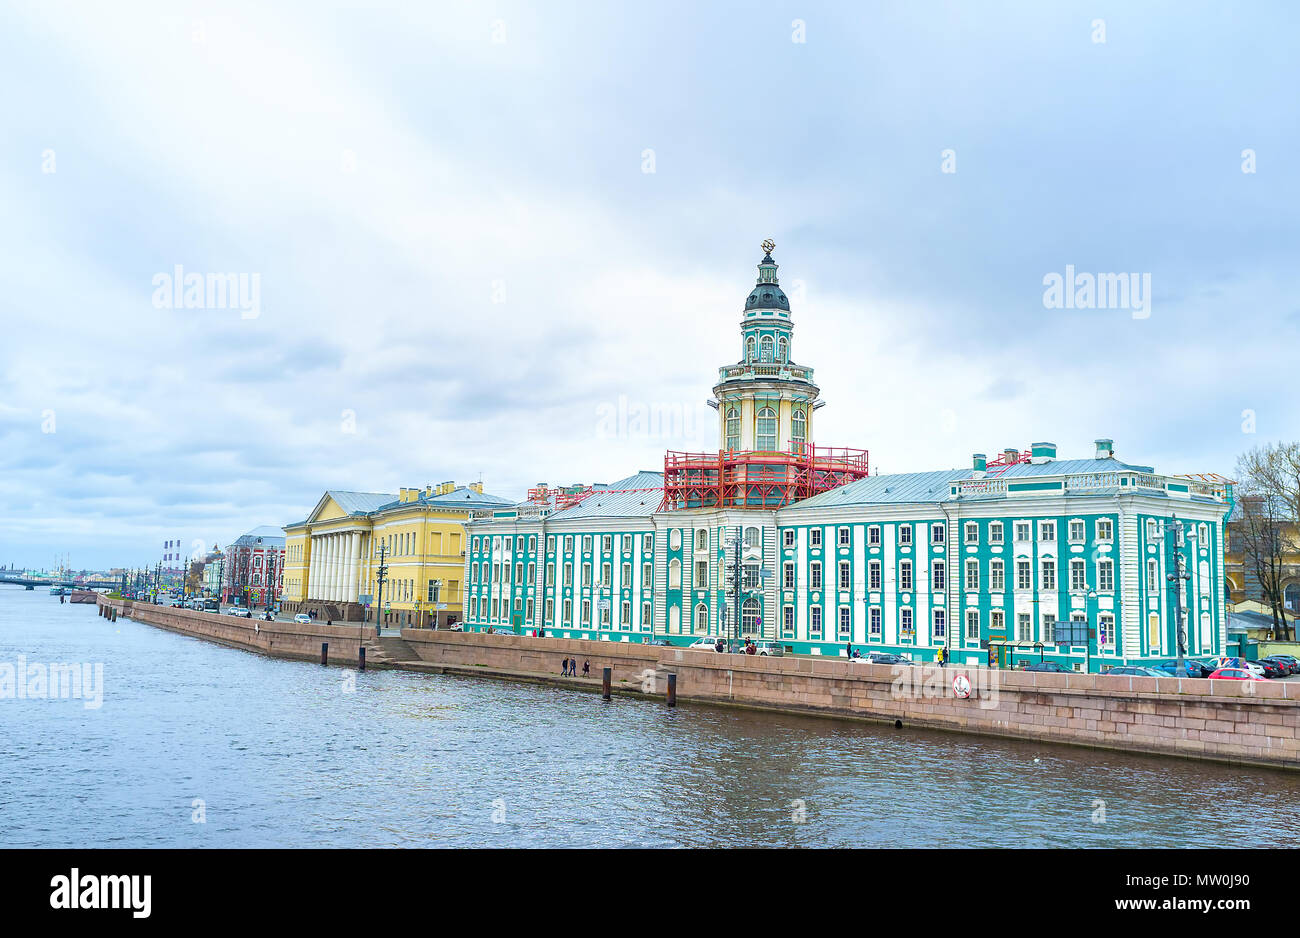 SAINT PETERSBURG, RUSSIA - APRIL 26, 2015: The beautiful emsemble of edifices located along University Embankment, on April 26 in S. Petersburg Stock Photo